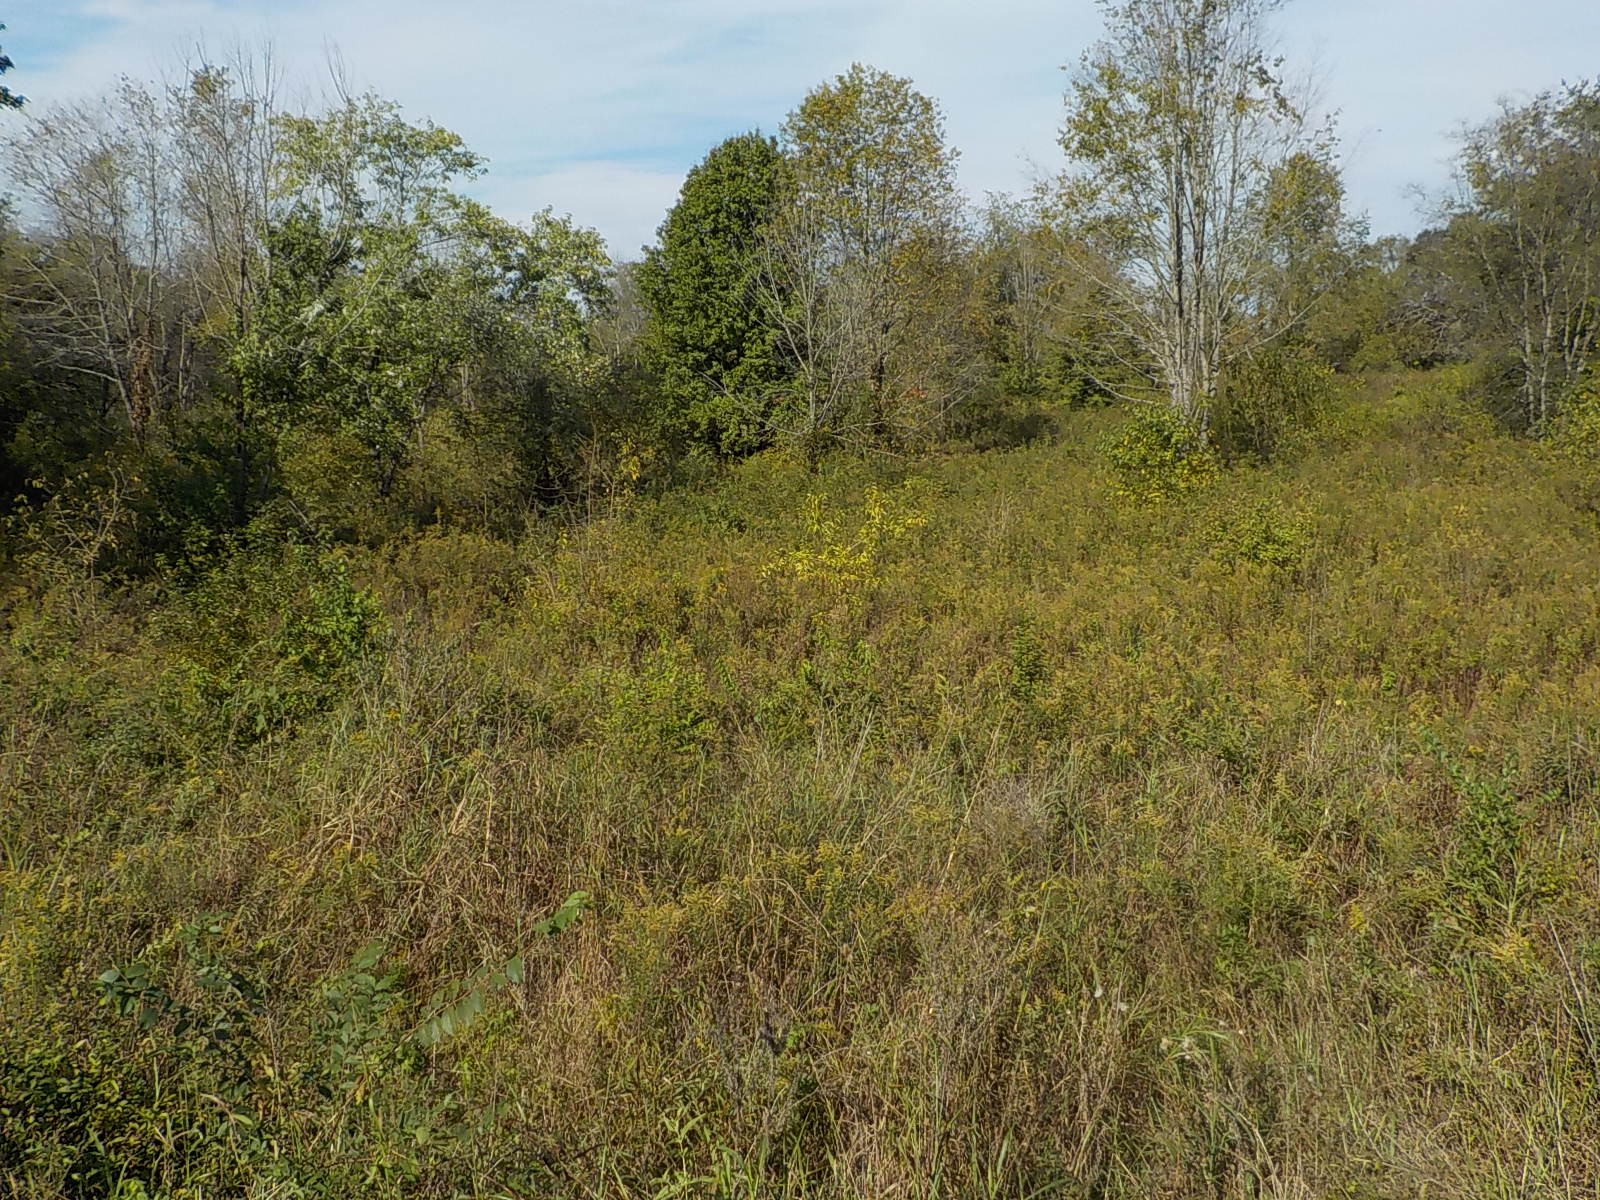 Great building tract located just outside the city limits of Gallatin - There are 2 other tracts available for purchase (5.29 acres and 5.01 acres) that adjoin on the left and right of the subject property.  This property would be ideal to build 1 house or buy all 3 tracts and build 3 houses.  Sewer is located close by - Selling subject to court approval